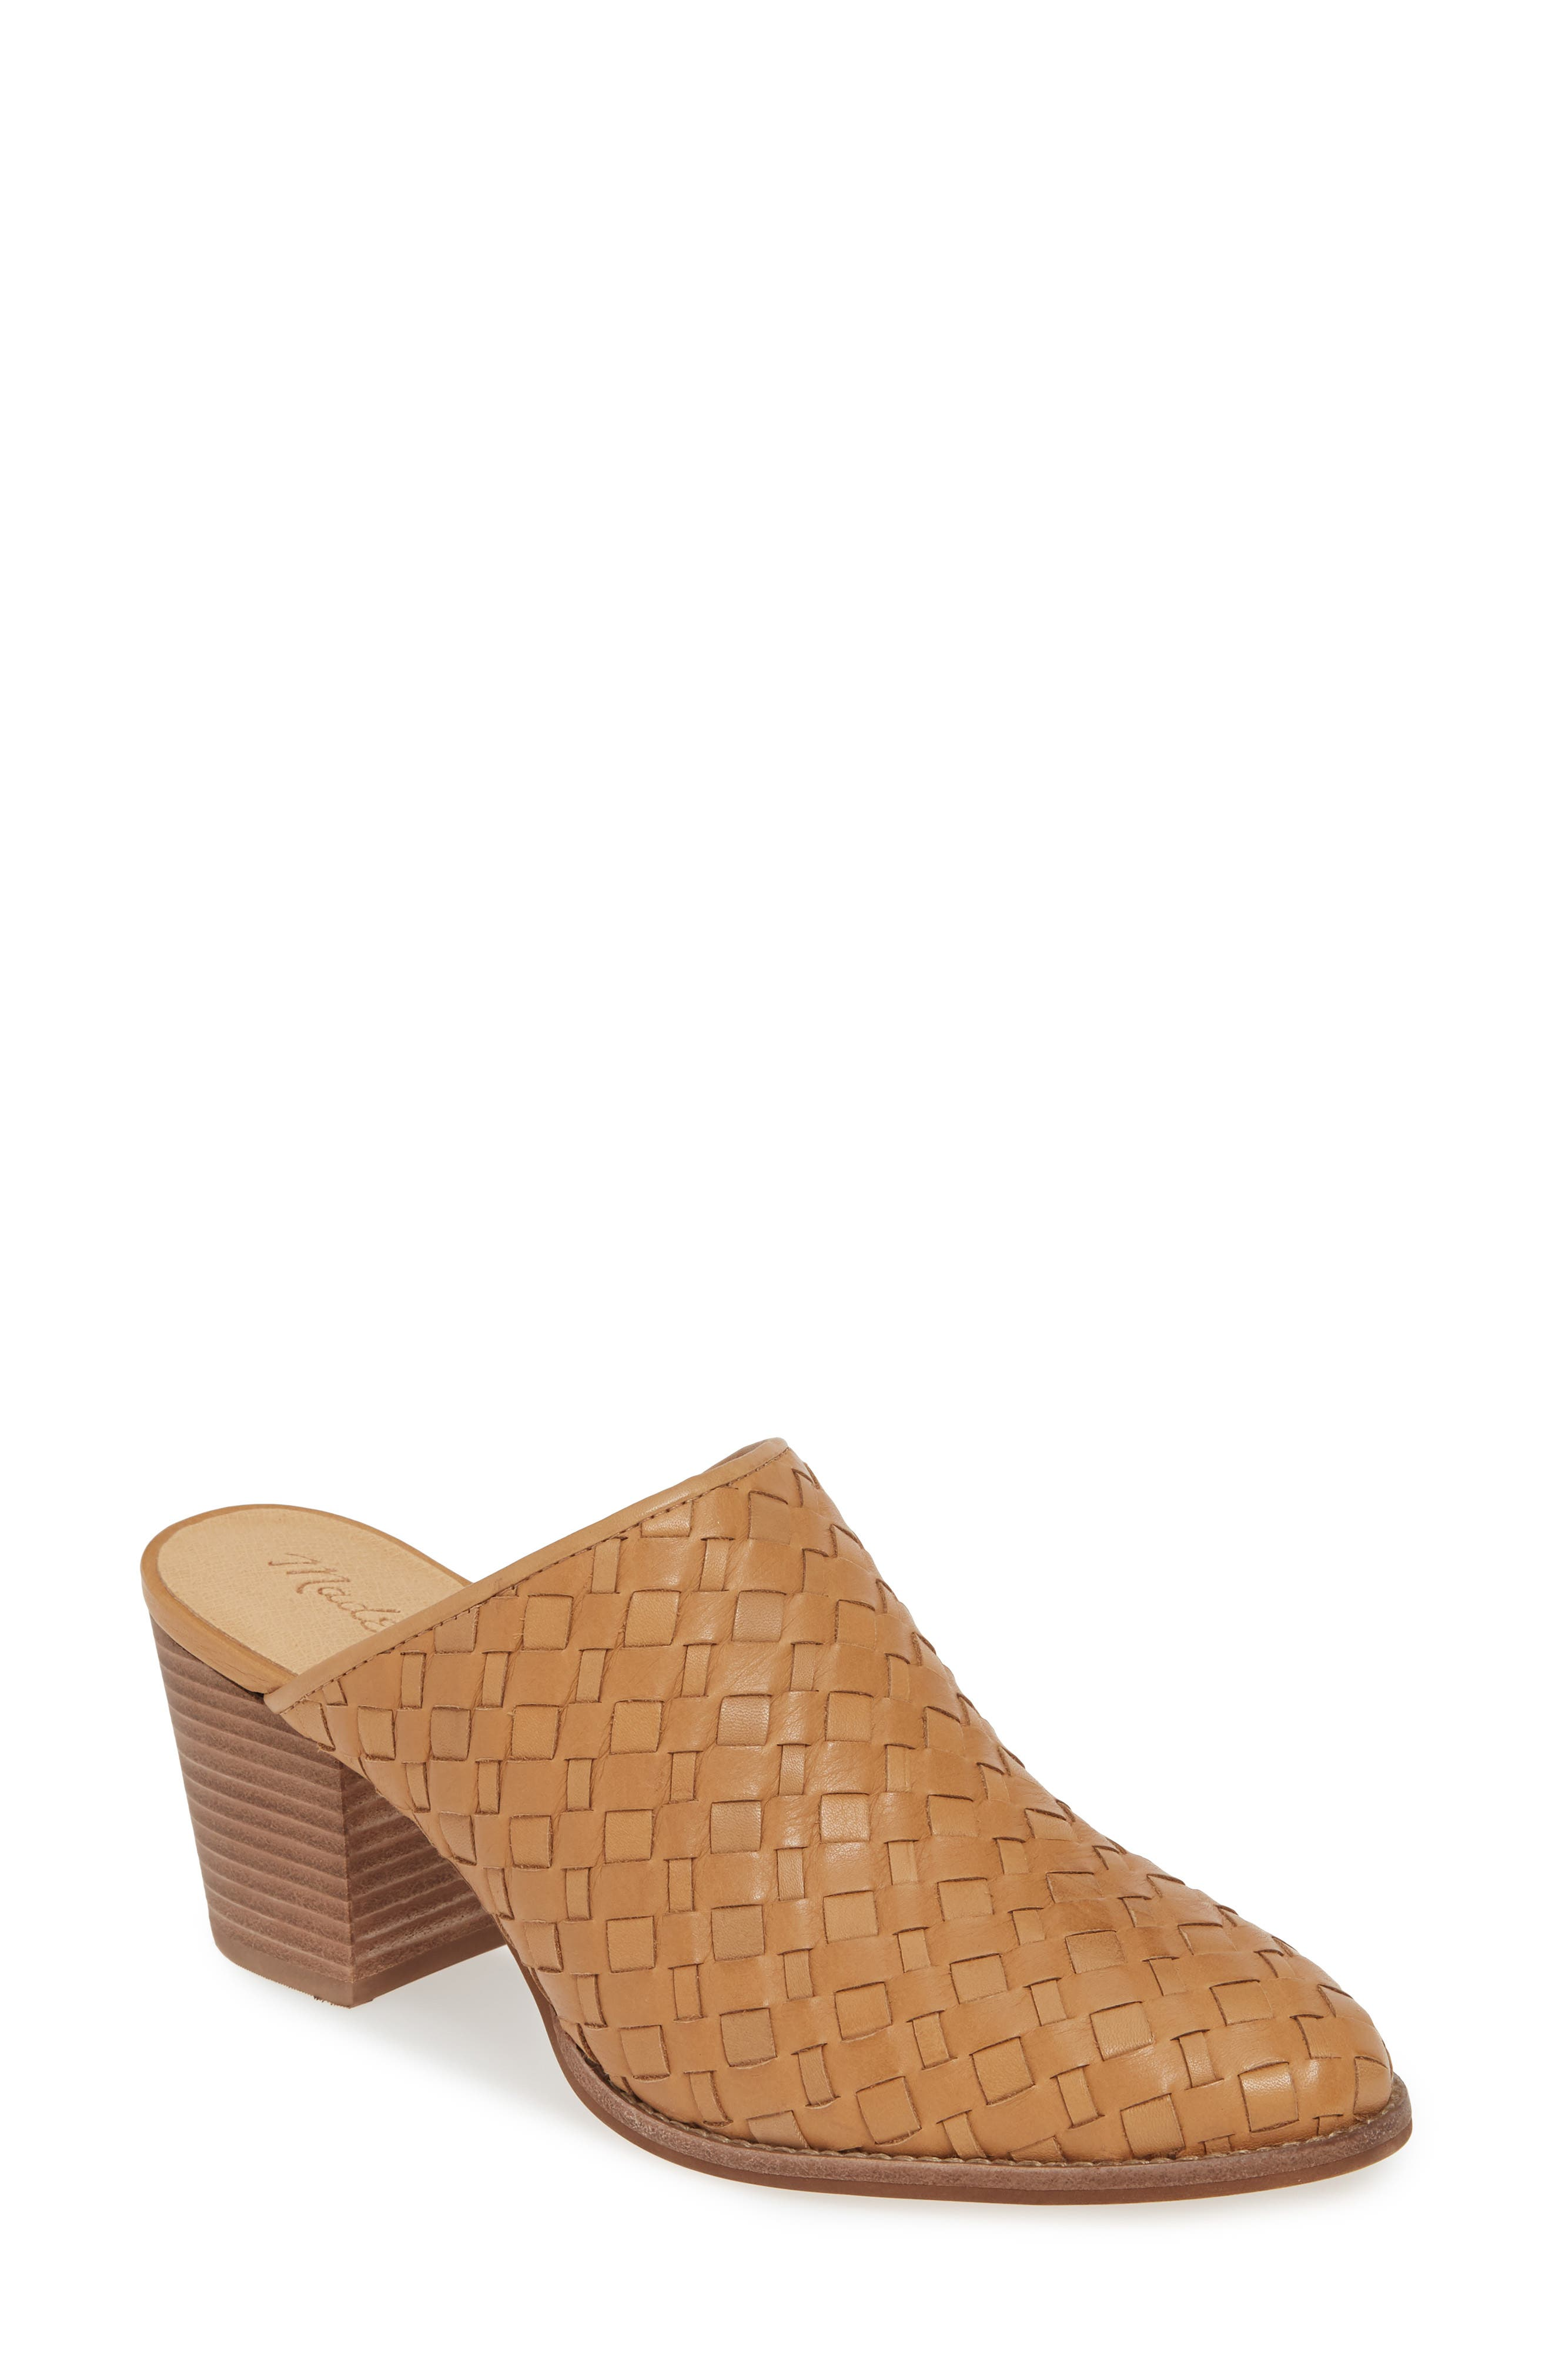 Madewell The Harper Woven Mule